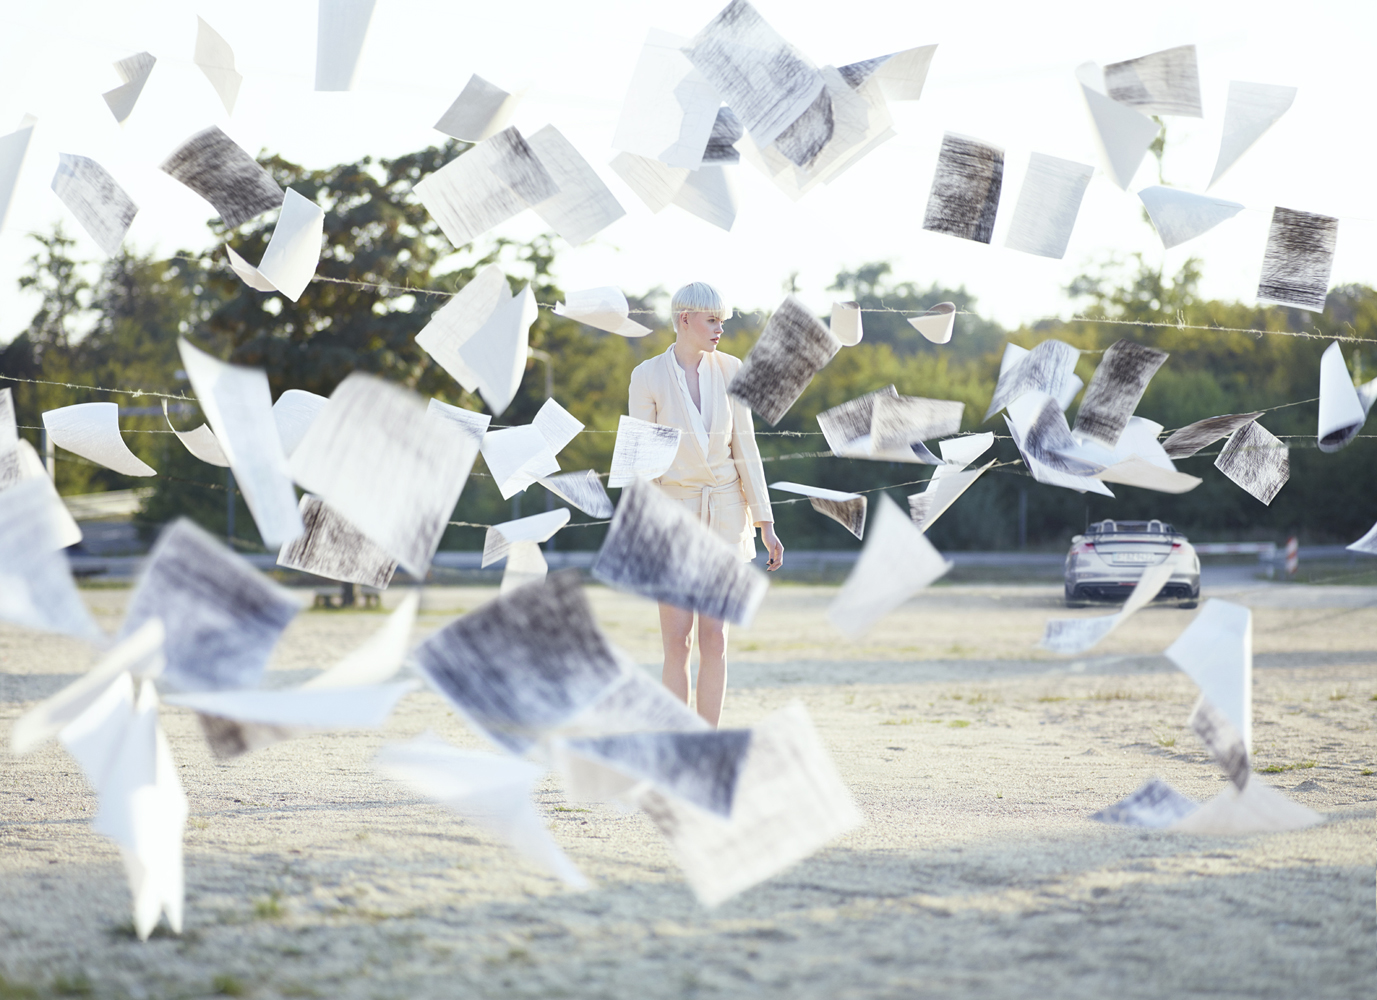 Pages flying outdoors with woman in background